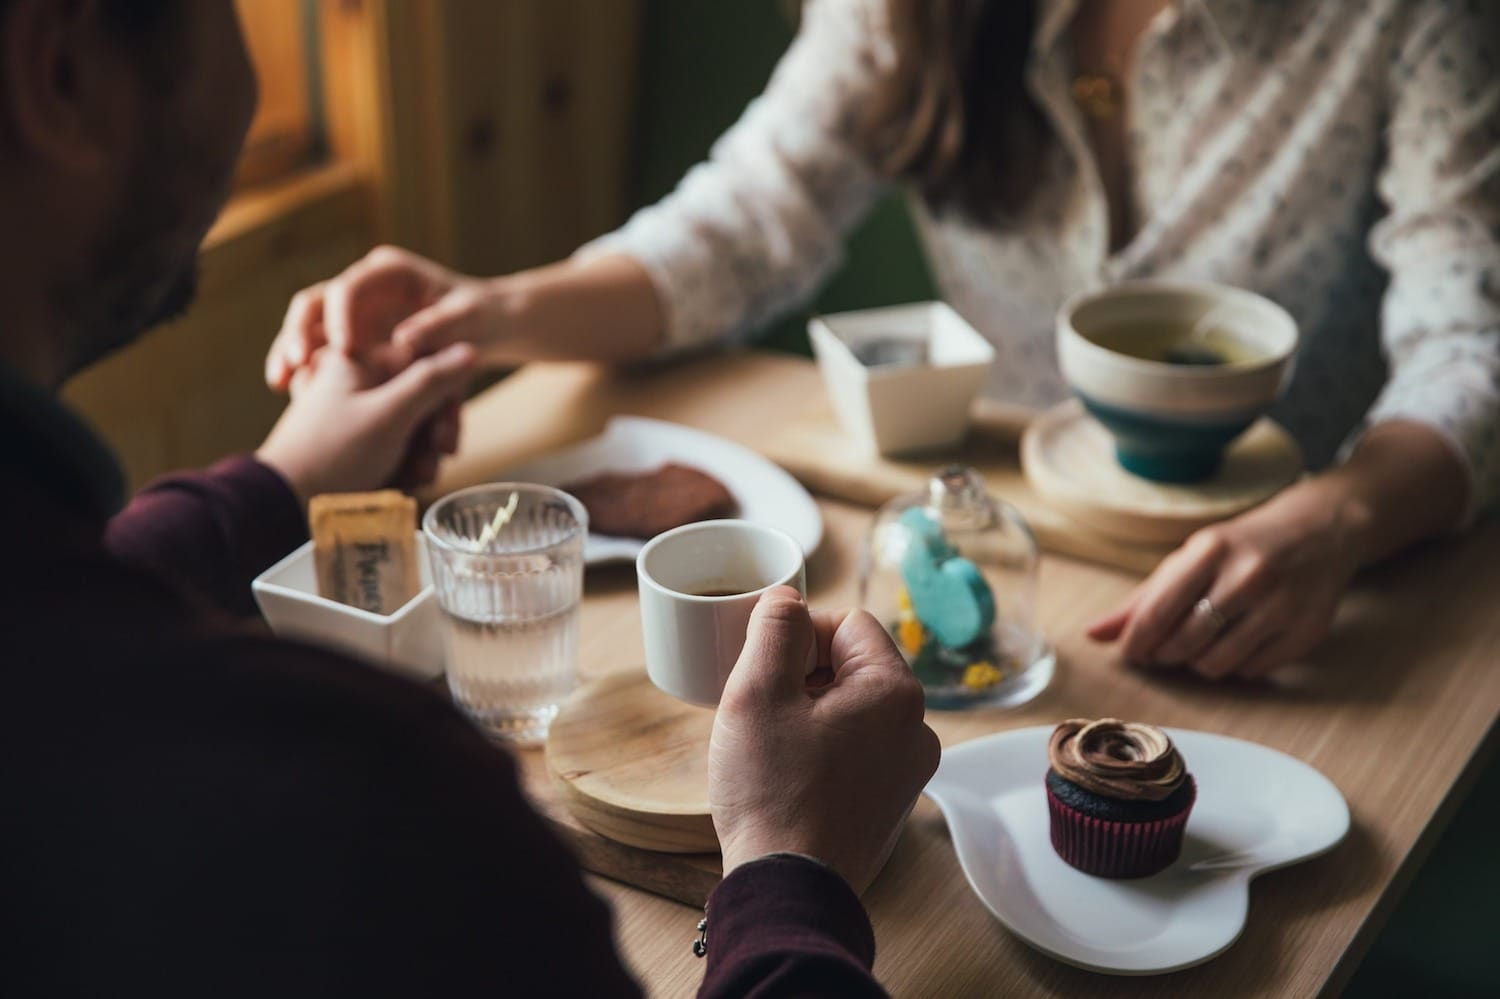 couple at a table having coffee